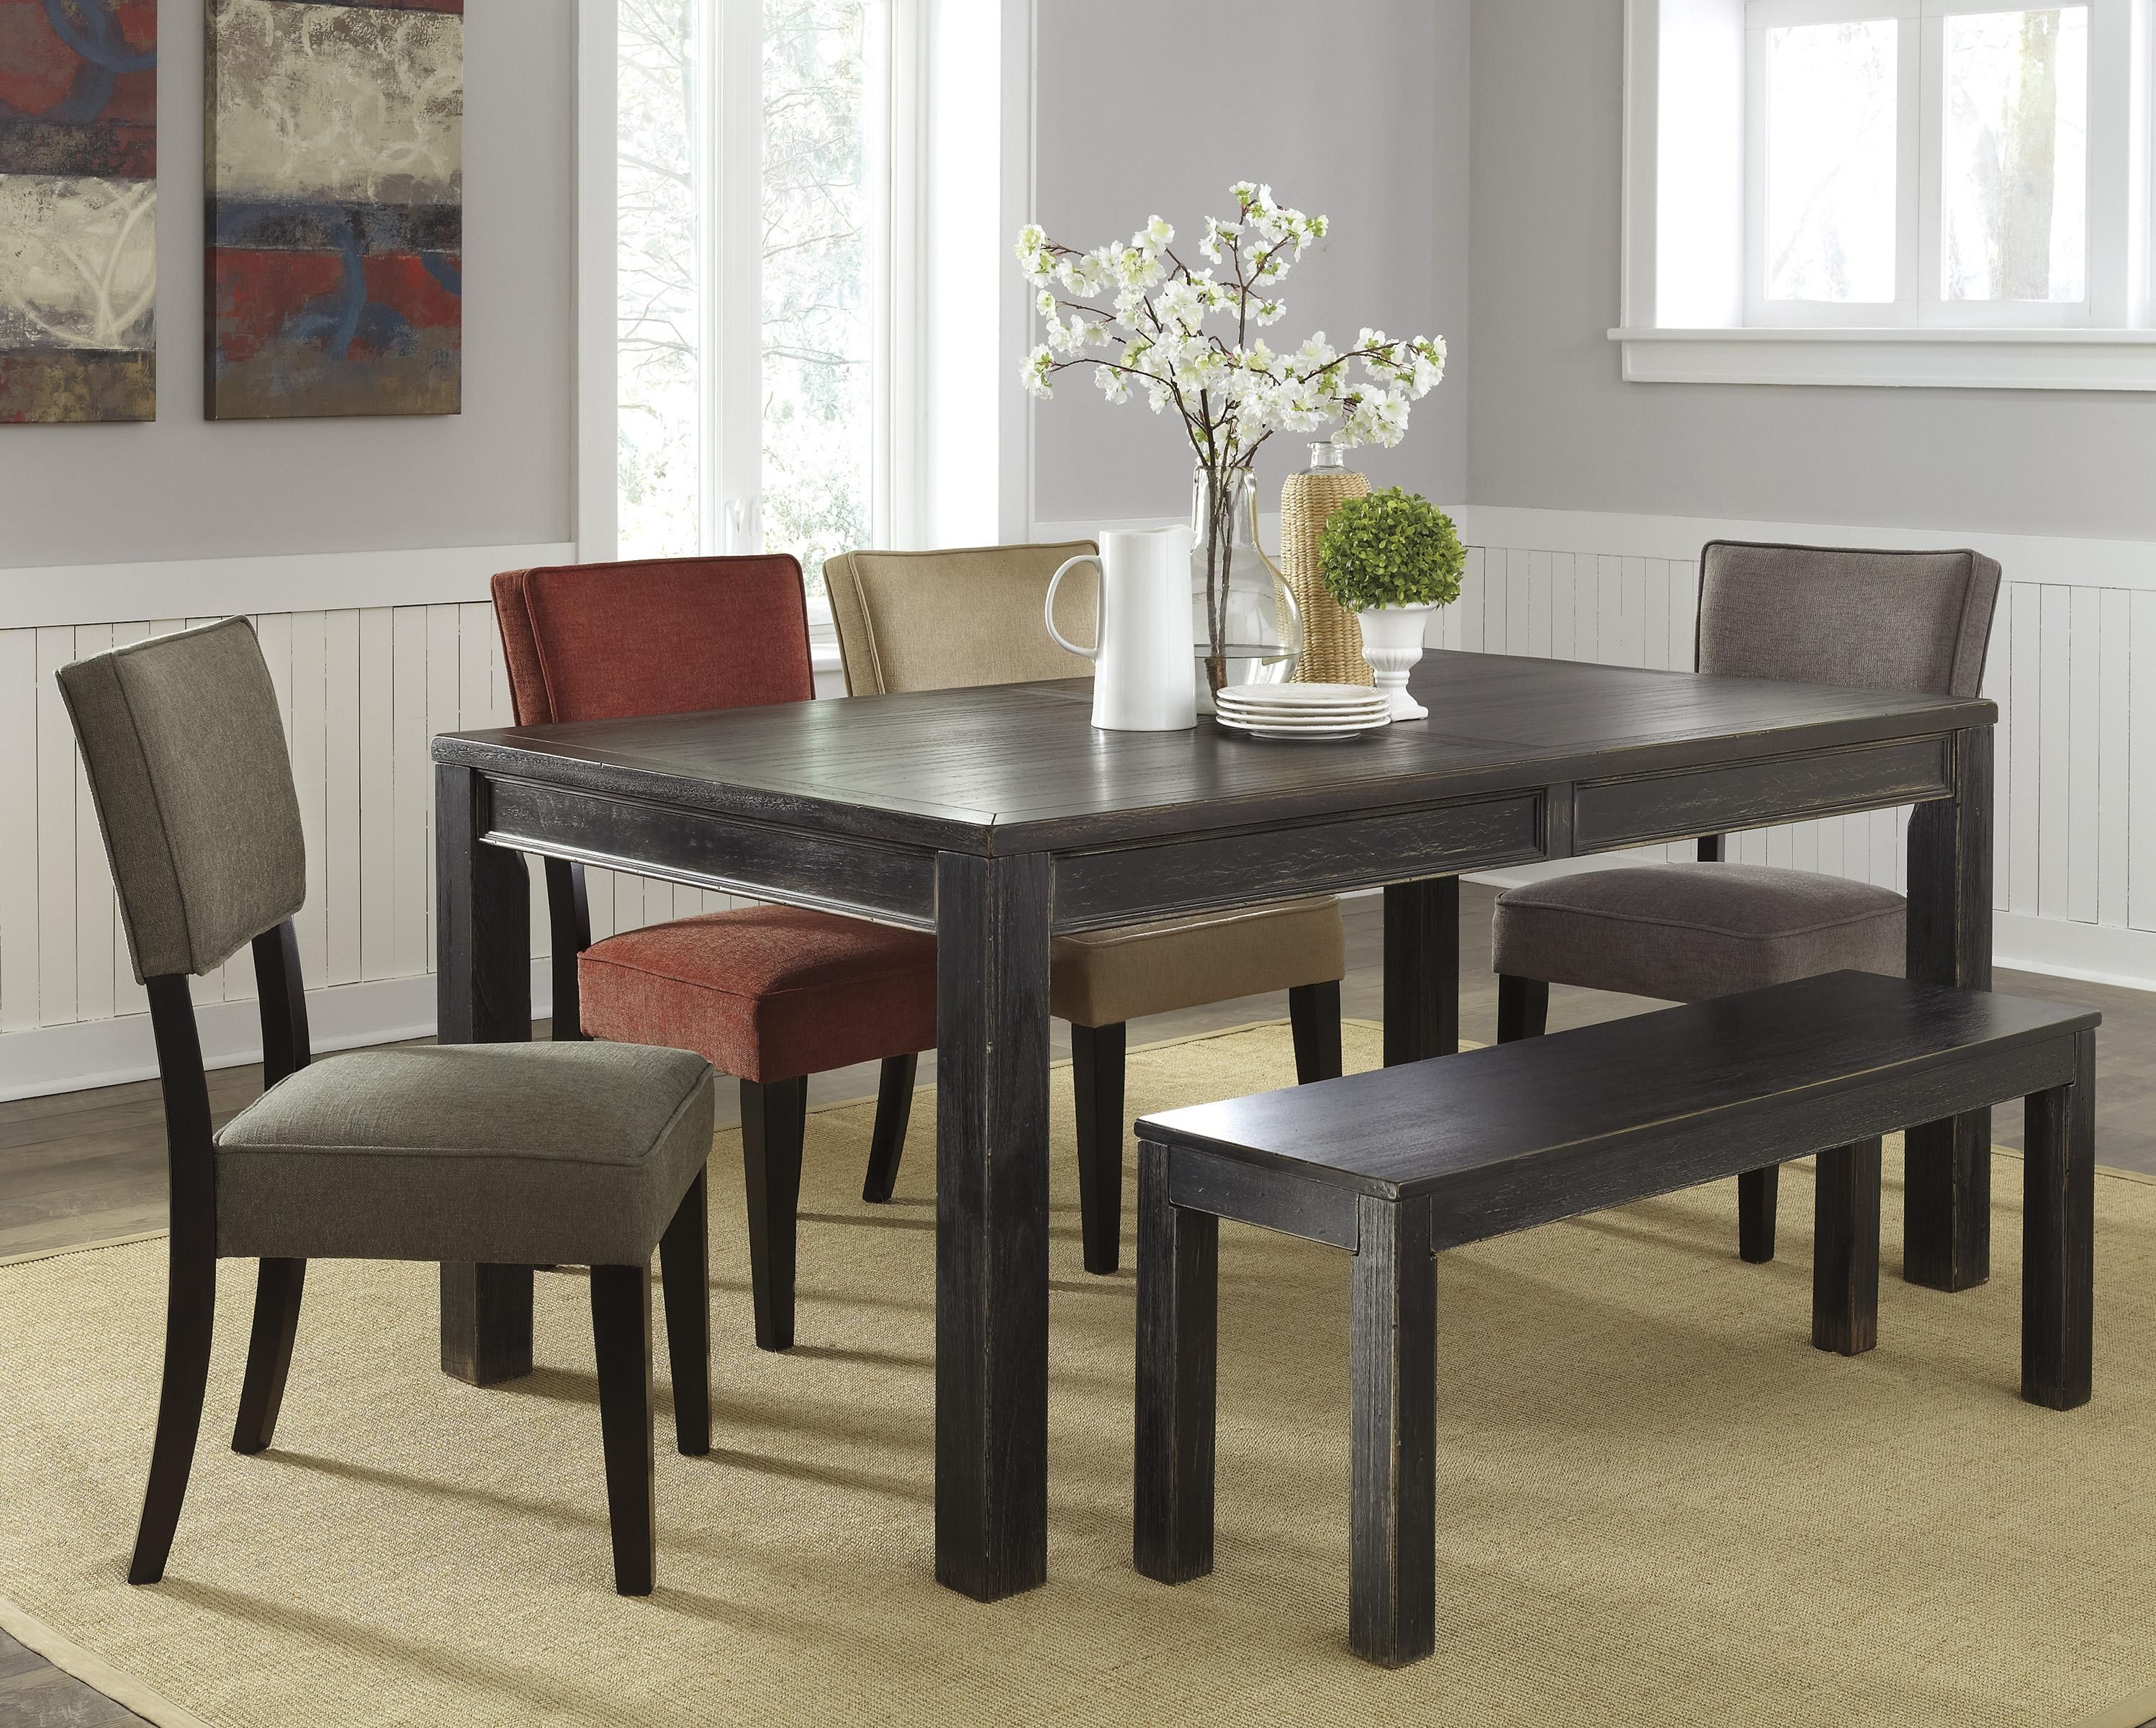 The Gavelston Dining Room Set Is All About Functionality You Have Ability To Select Upholstered Side Chairs Or Seats And A Bench